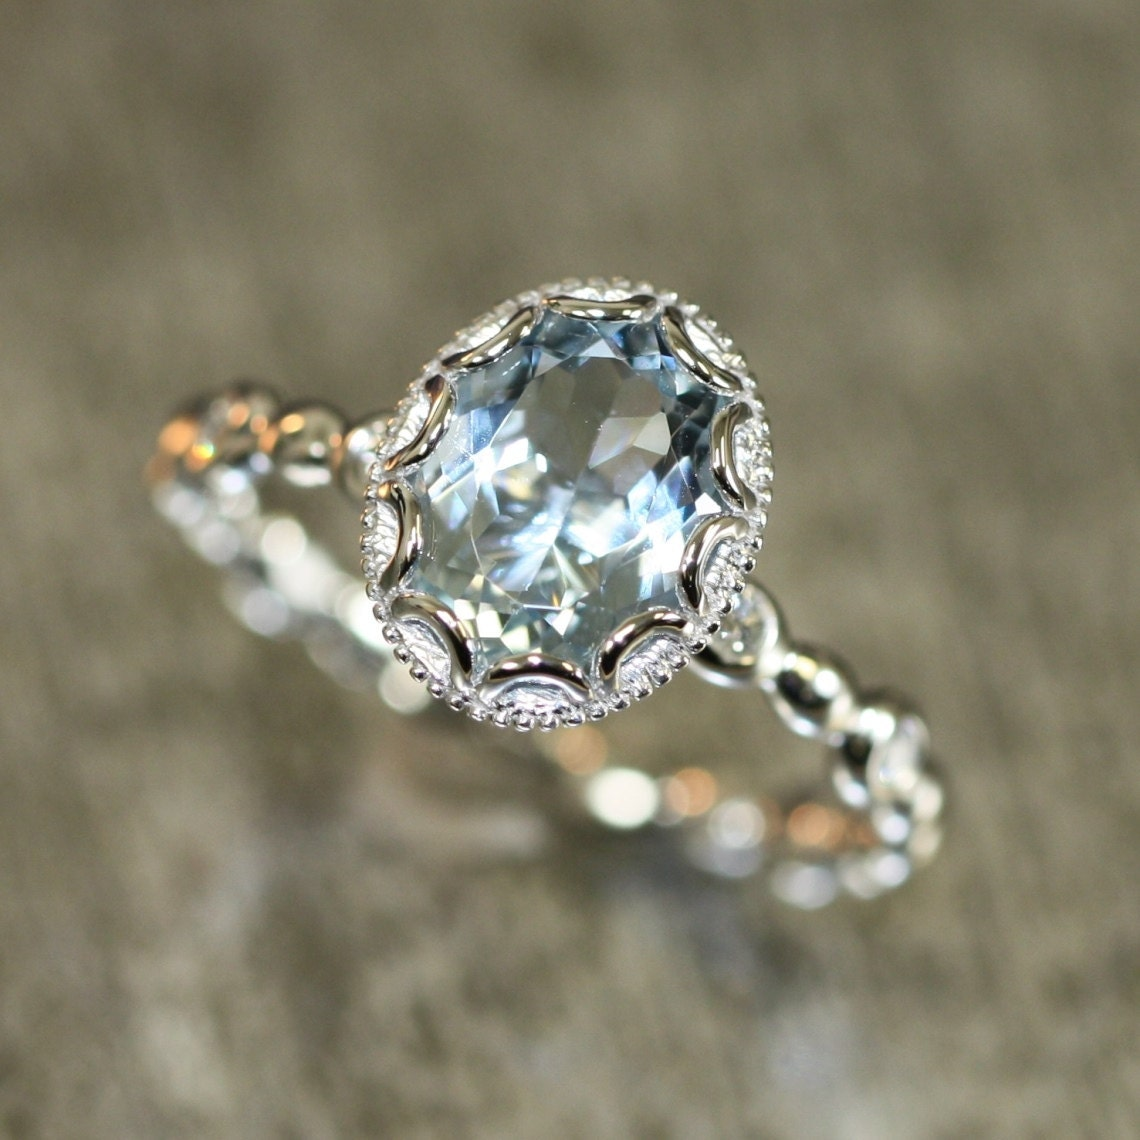 zoom14k White Gold Floral Aquamarine Engagement Ring in Pebble. Etsy Vintage Wedding Rings. Home Design Ideas